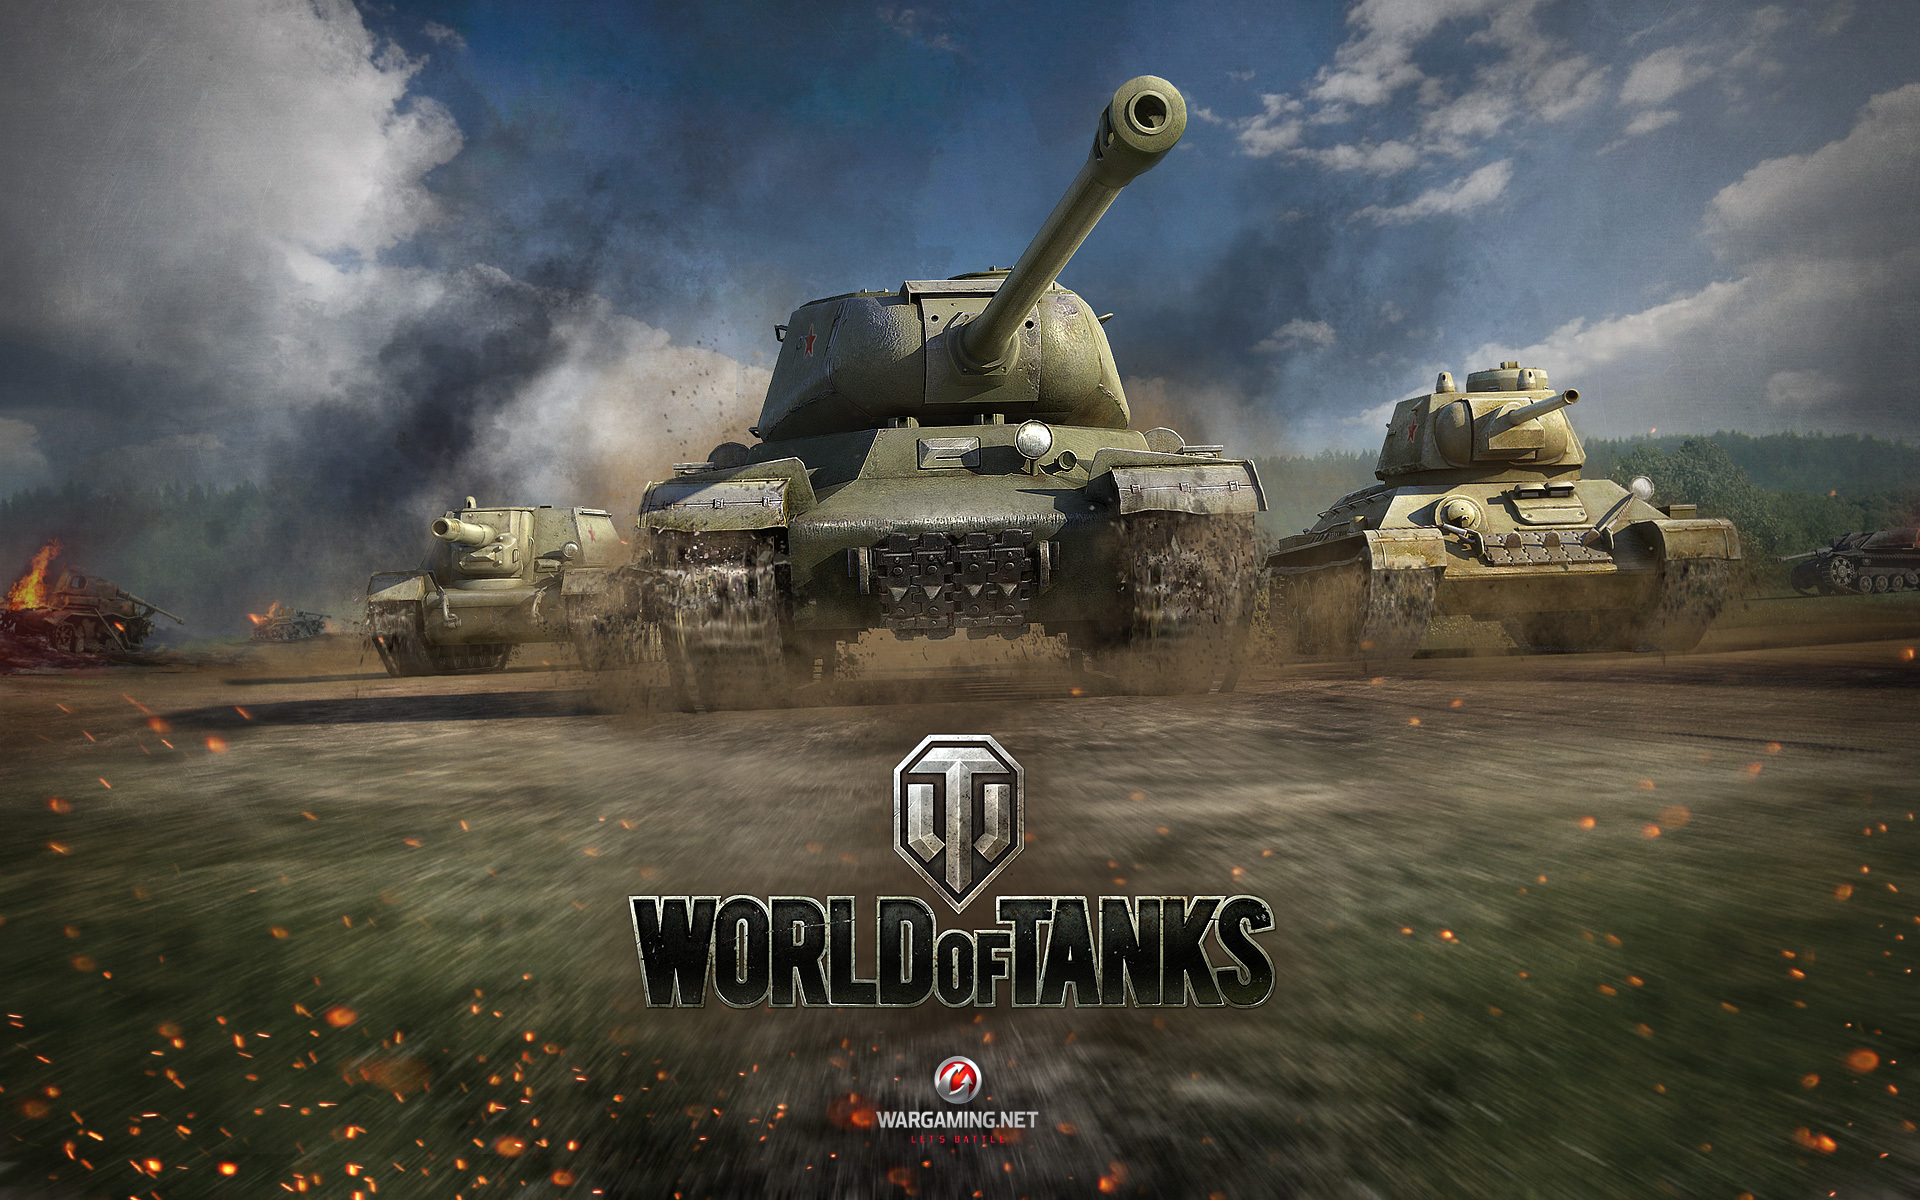 World Of Tanks Live Wallpaper Android Apps On Google Play 1920x1200